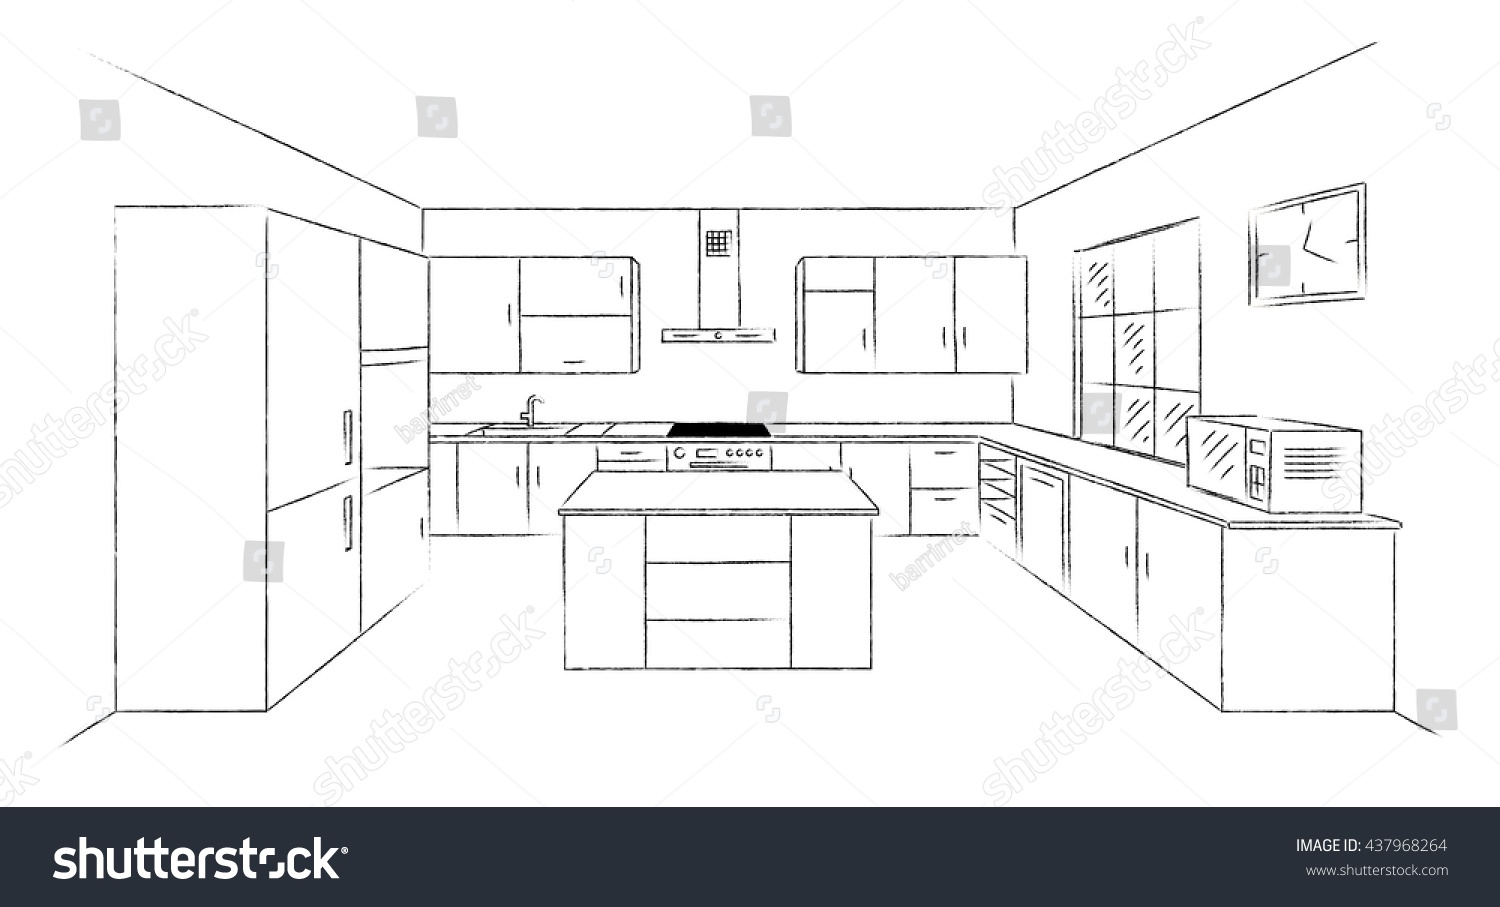 Royalty Free Sketch Hand Drawing Kitchen Interior